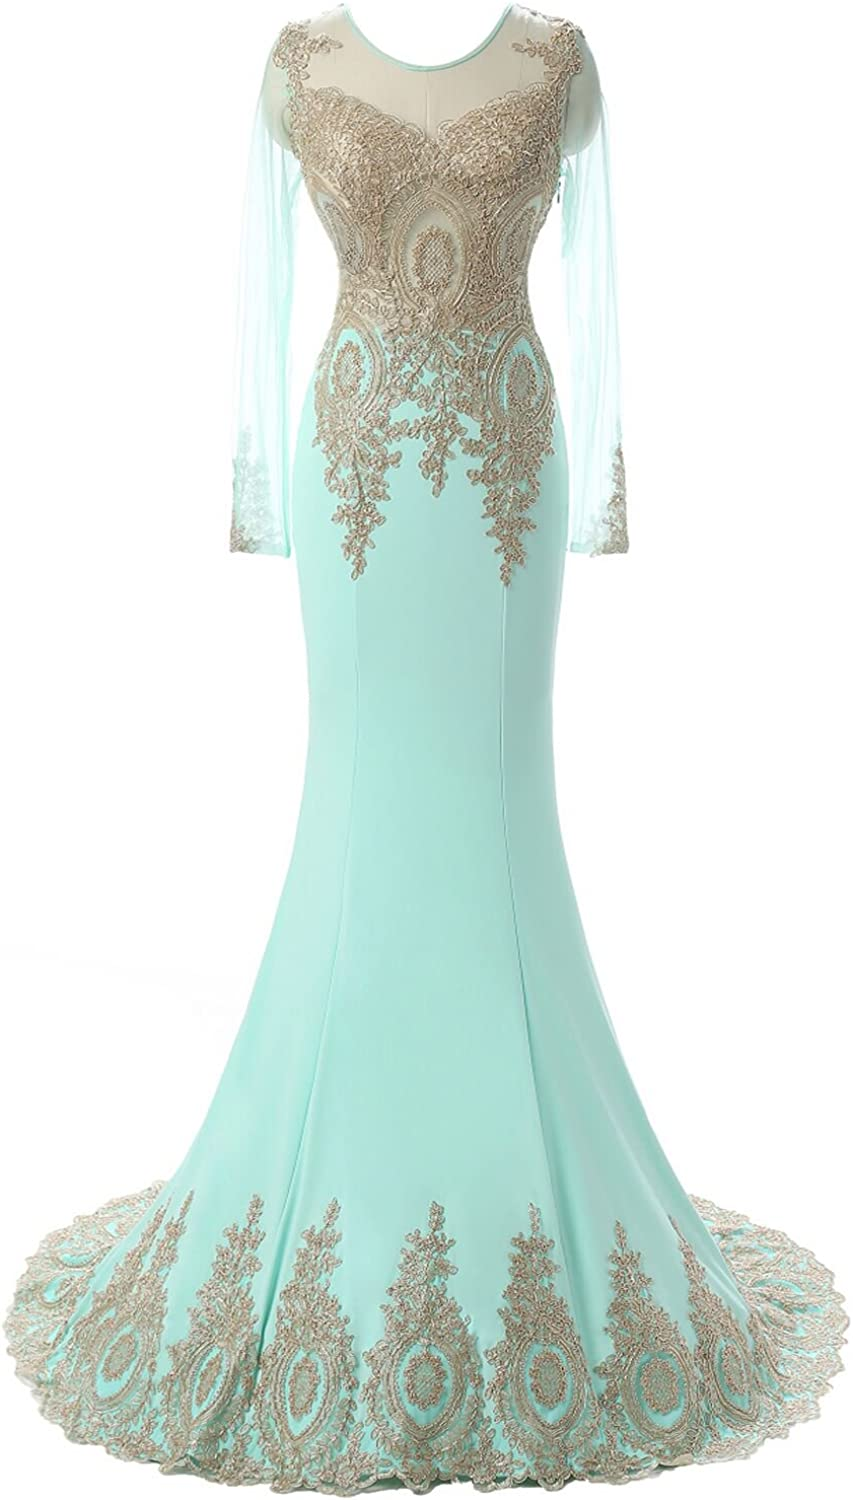 Epinkbridal Women's Long Sleeve Evening Dress Sexy Applique Mermaid Prom Gown